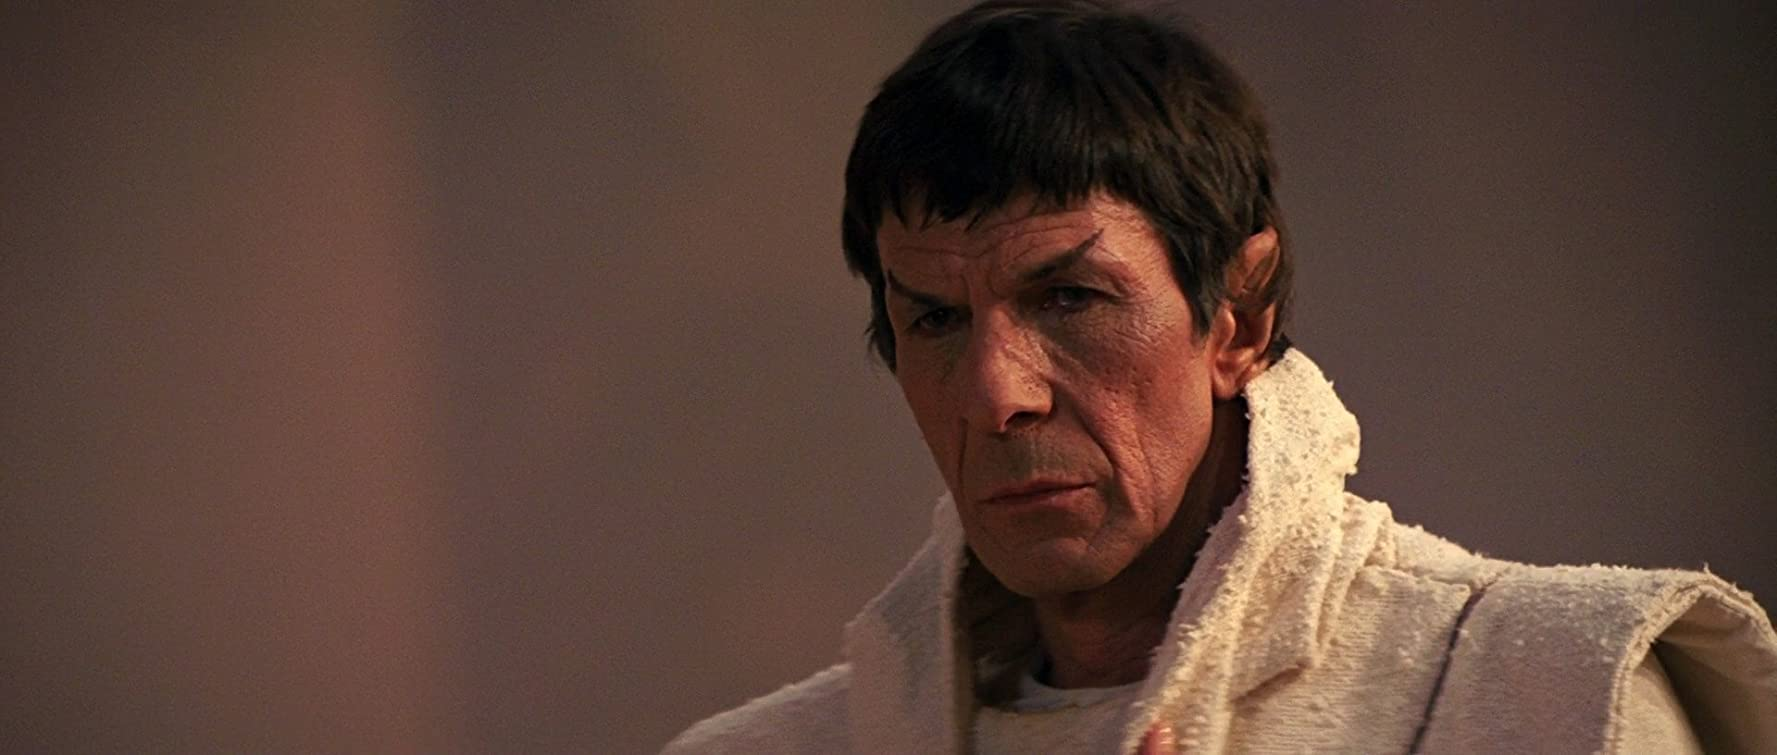 Leonard Nimoy in Star Trek III: The Search for Spock (1984)